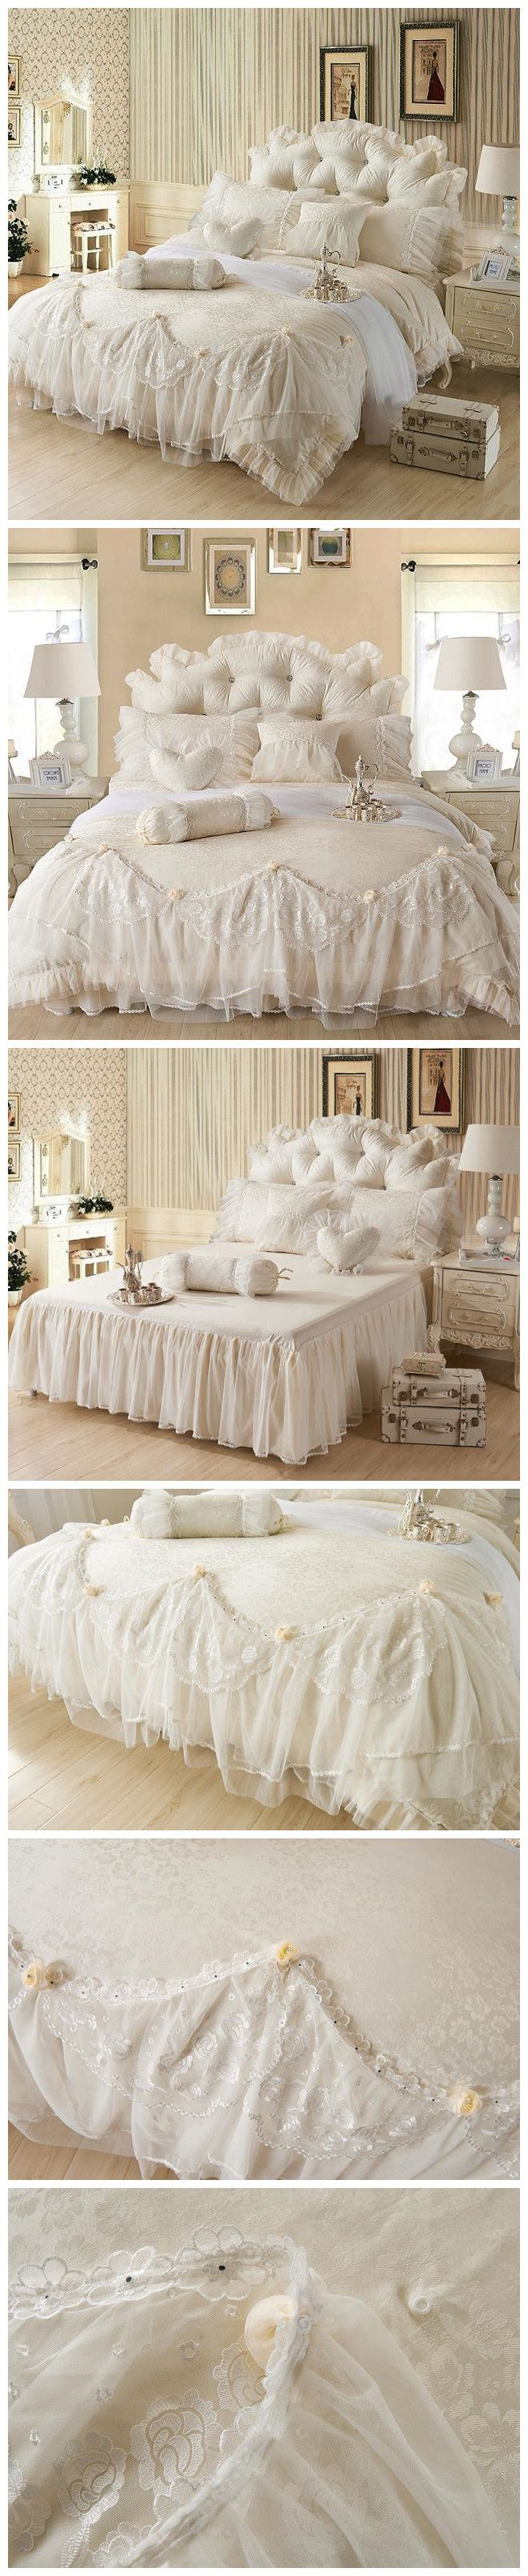 best 美しい寝室 images on pinterest bedroom ideas bedrooms and